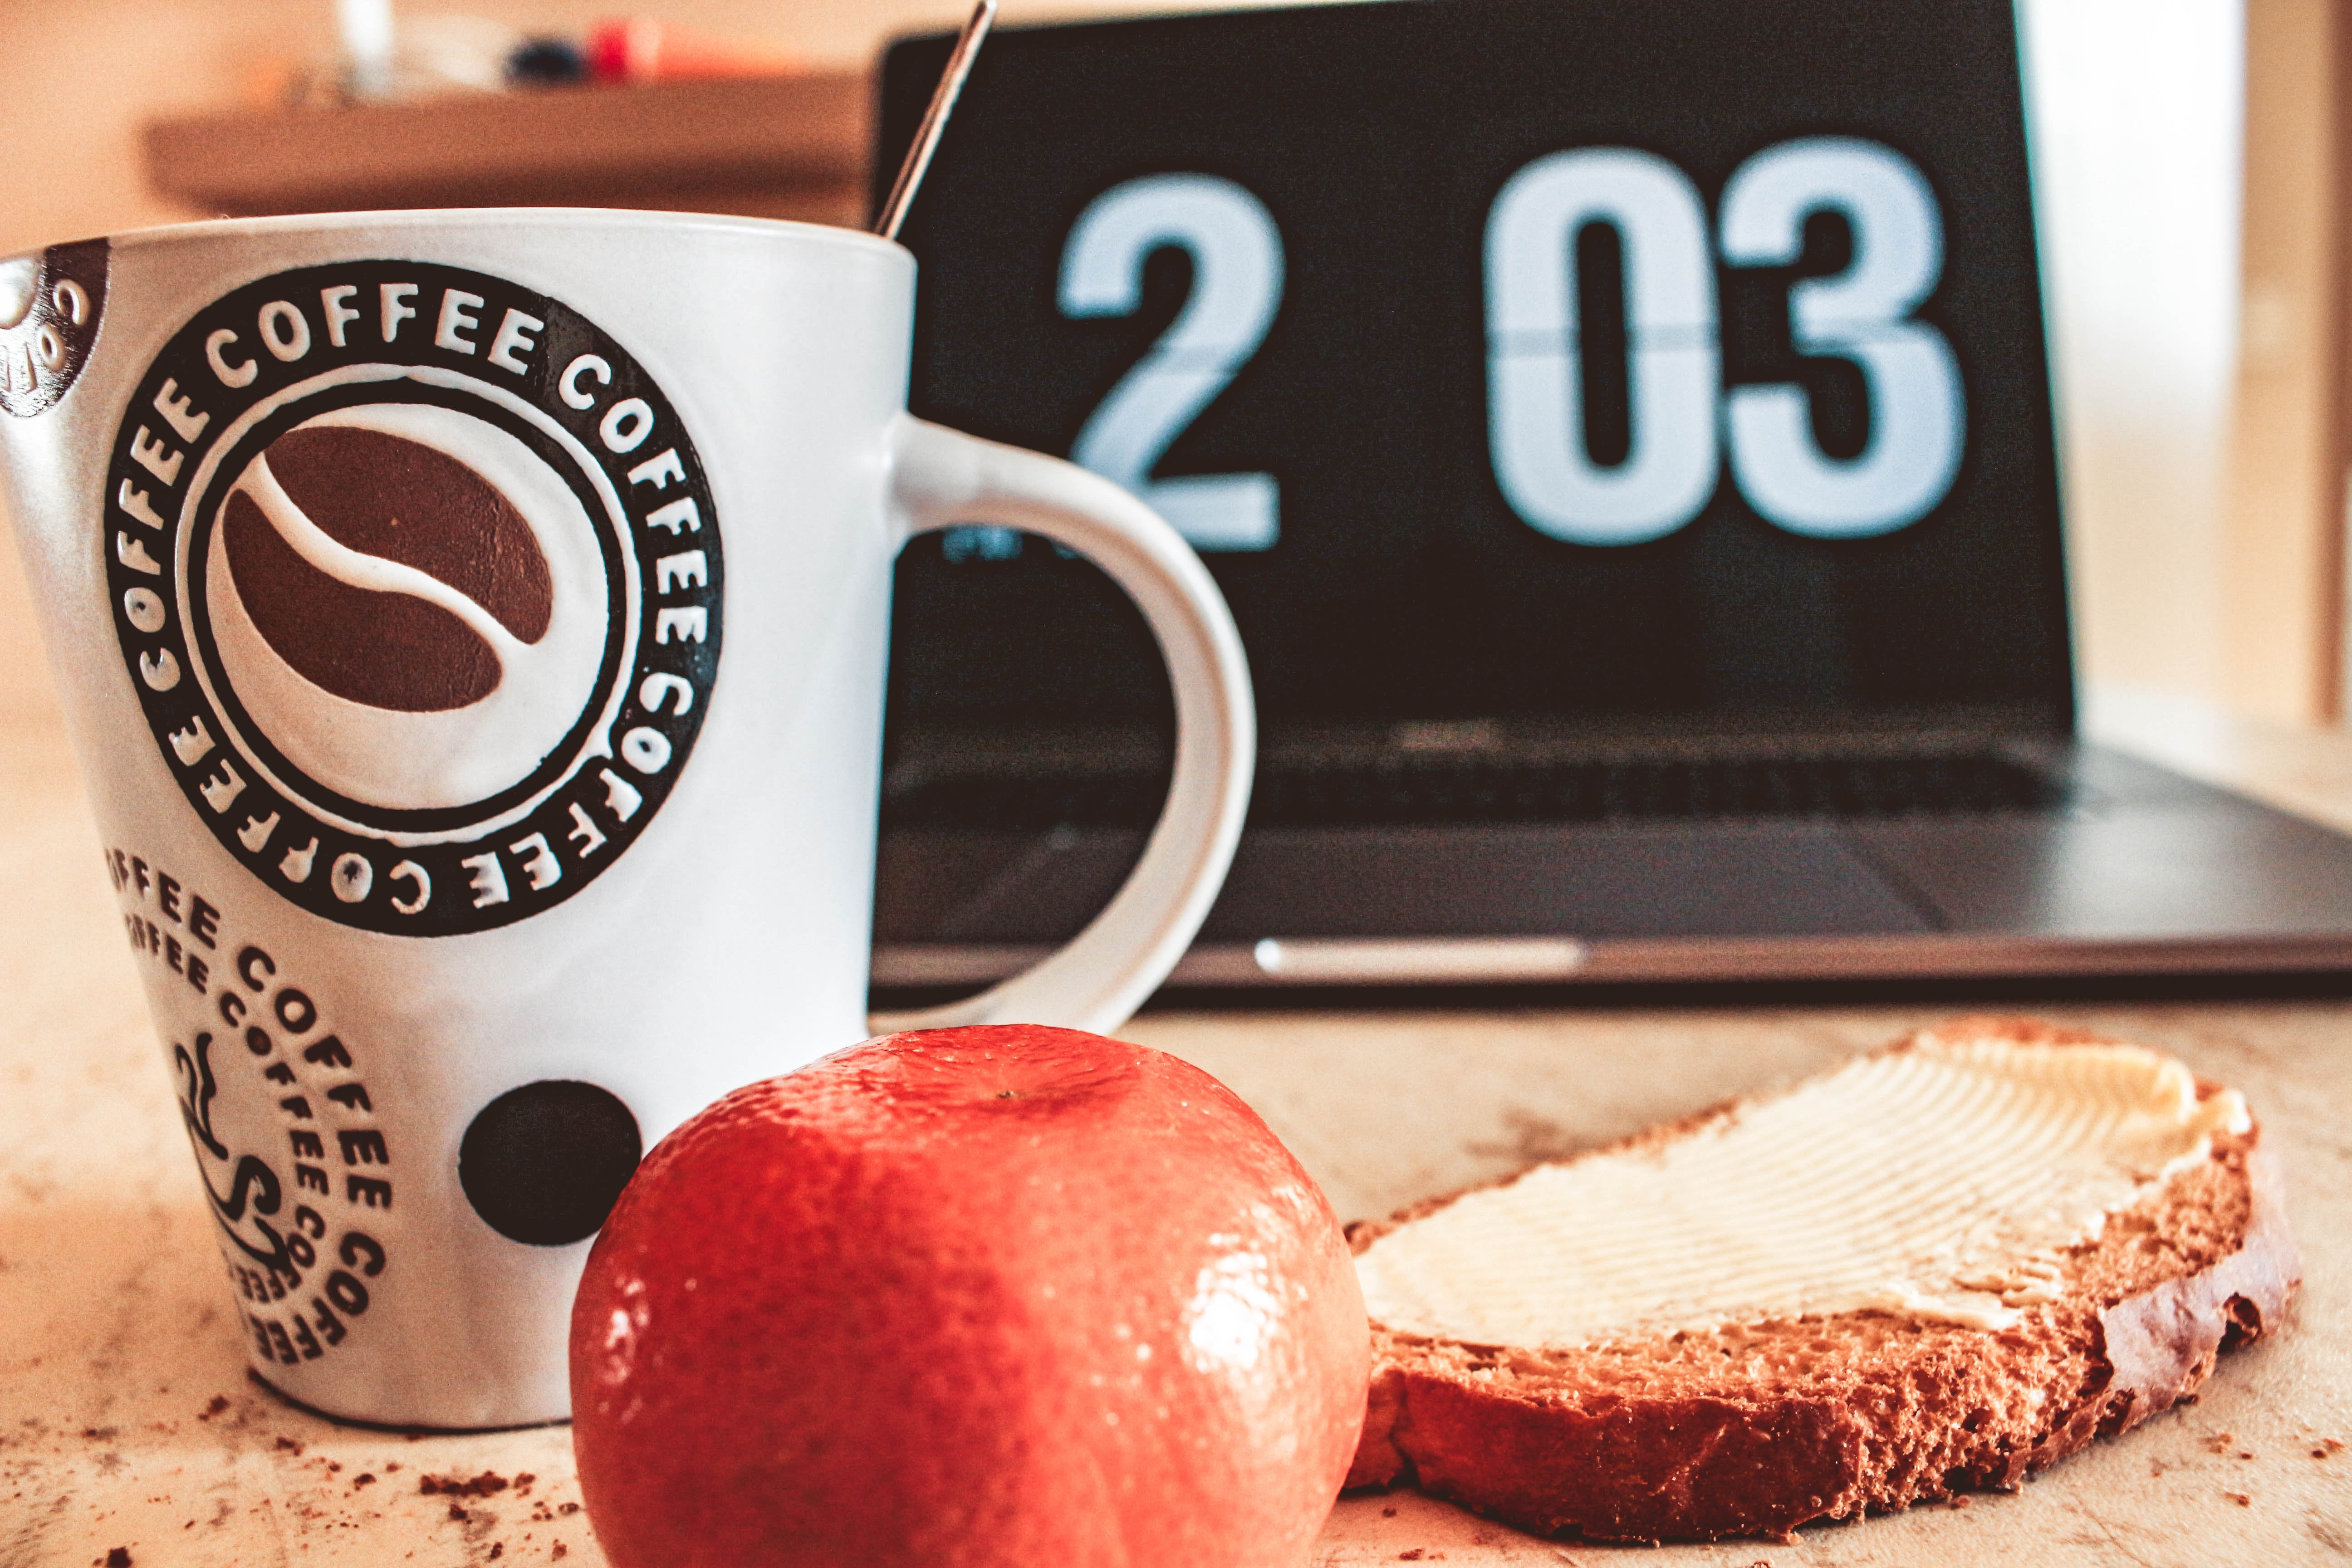 Closeup Photo of White and Black Printed Ceramic Mug Beside Pastry, Bread, Fruit, Time, Table, HQ Photo